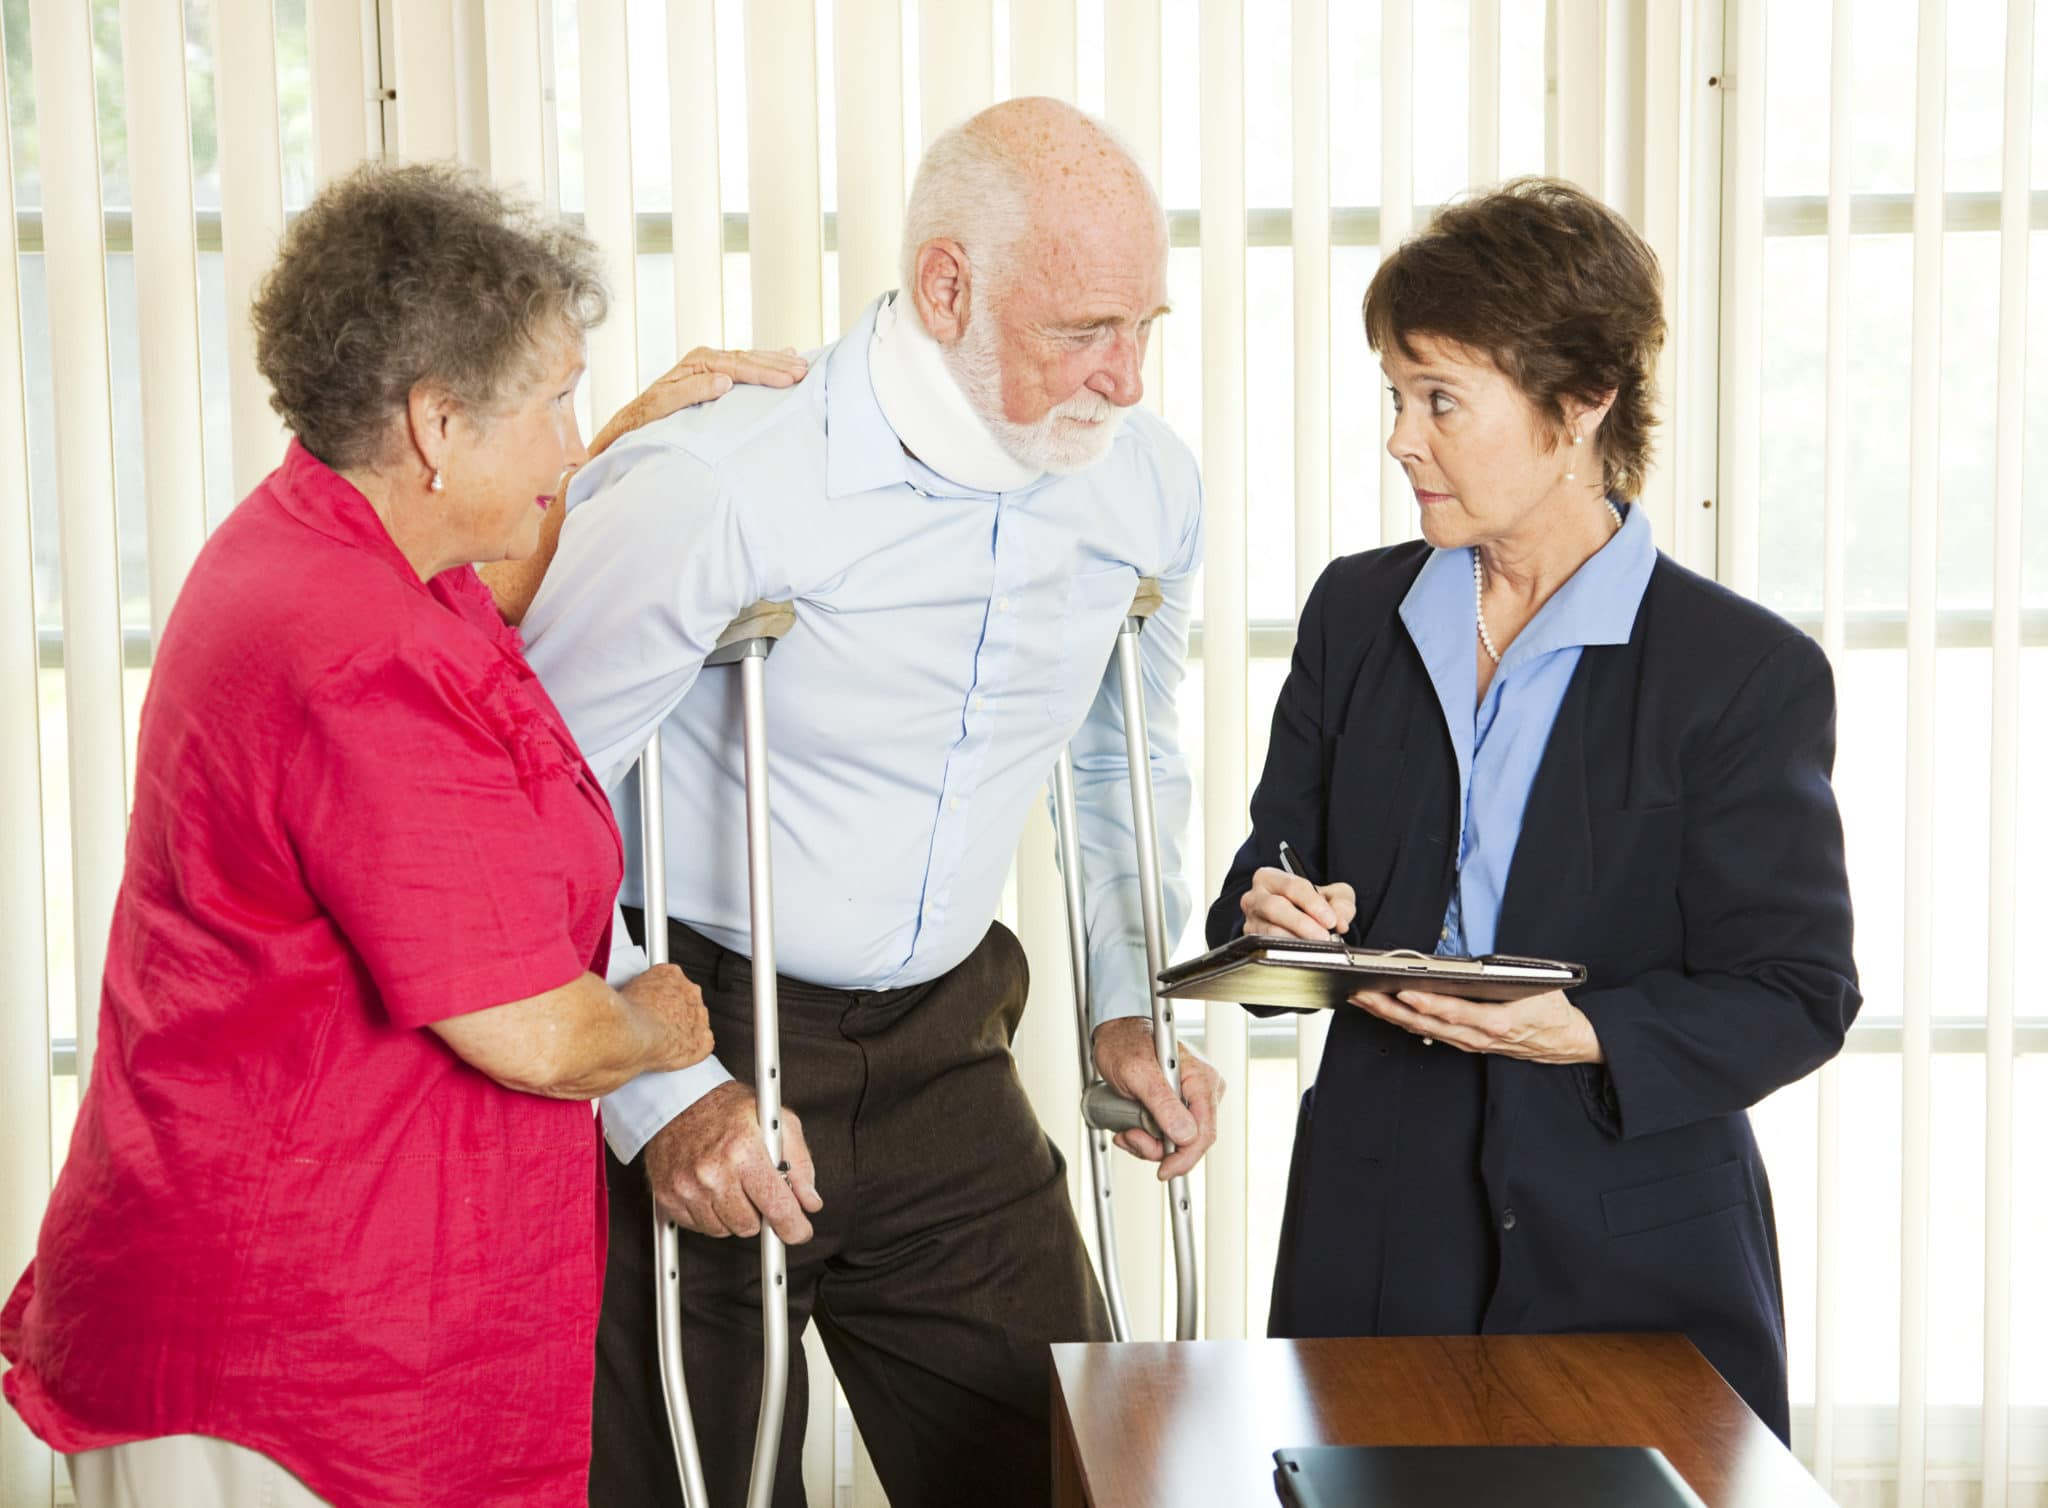 Personal Injury Lawyer in West Caldwell, New Jersey - Kemenczy Law